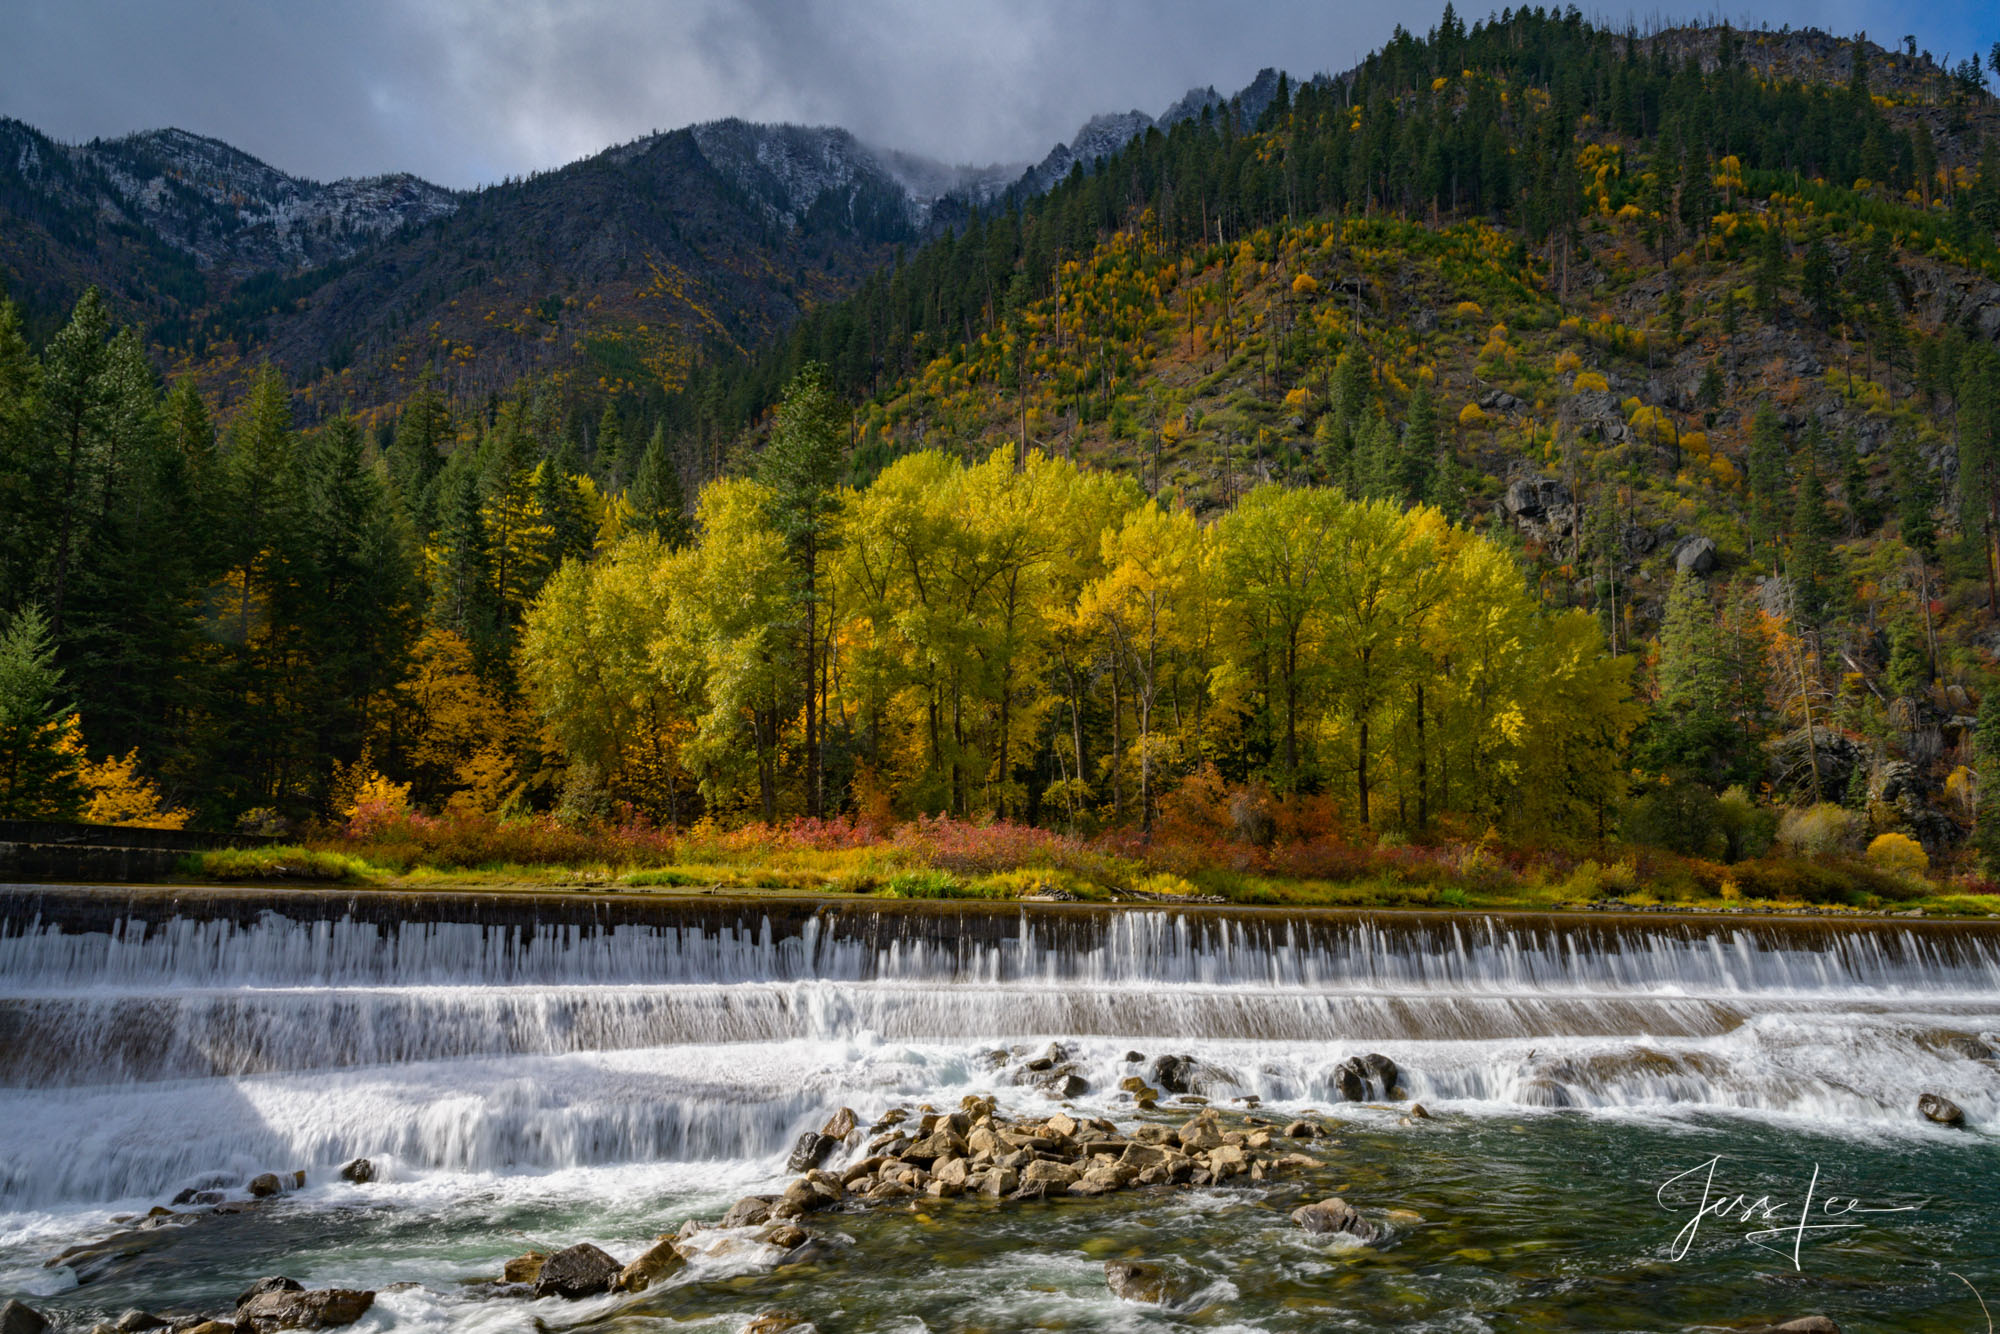 Fine Art Limited Edition Photography of Washington. Washington Autumn Landscapes, Rivers, waterways.This is part of the luxurious...